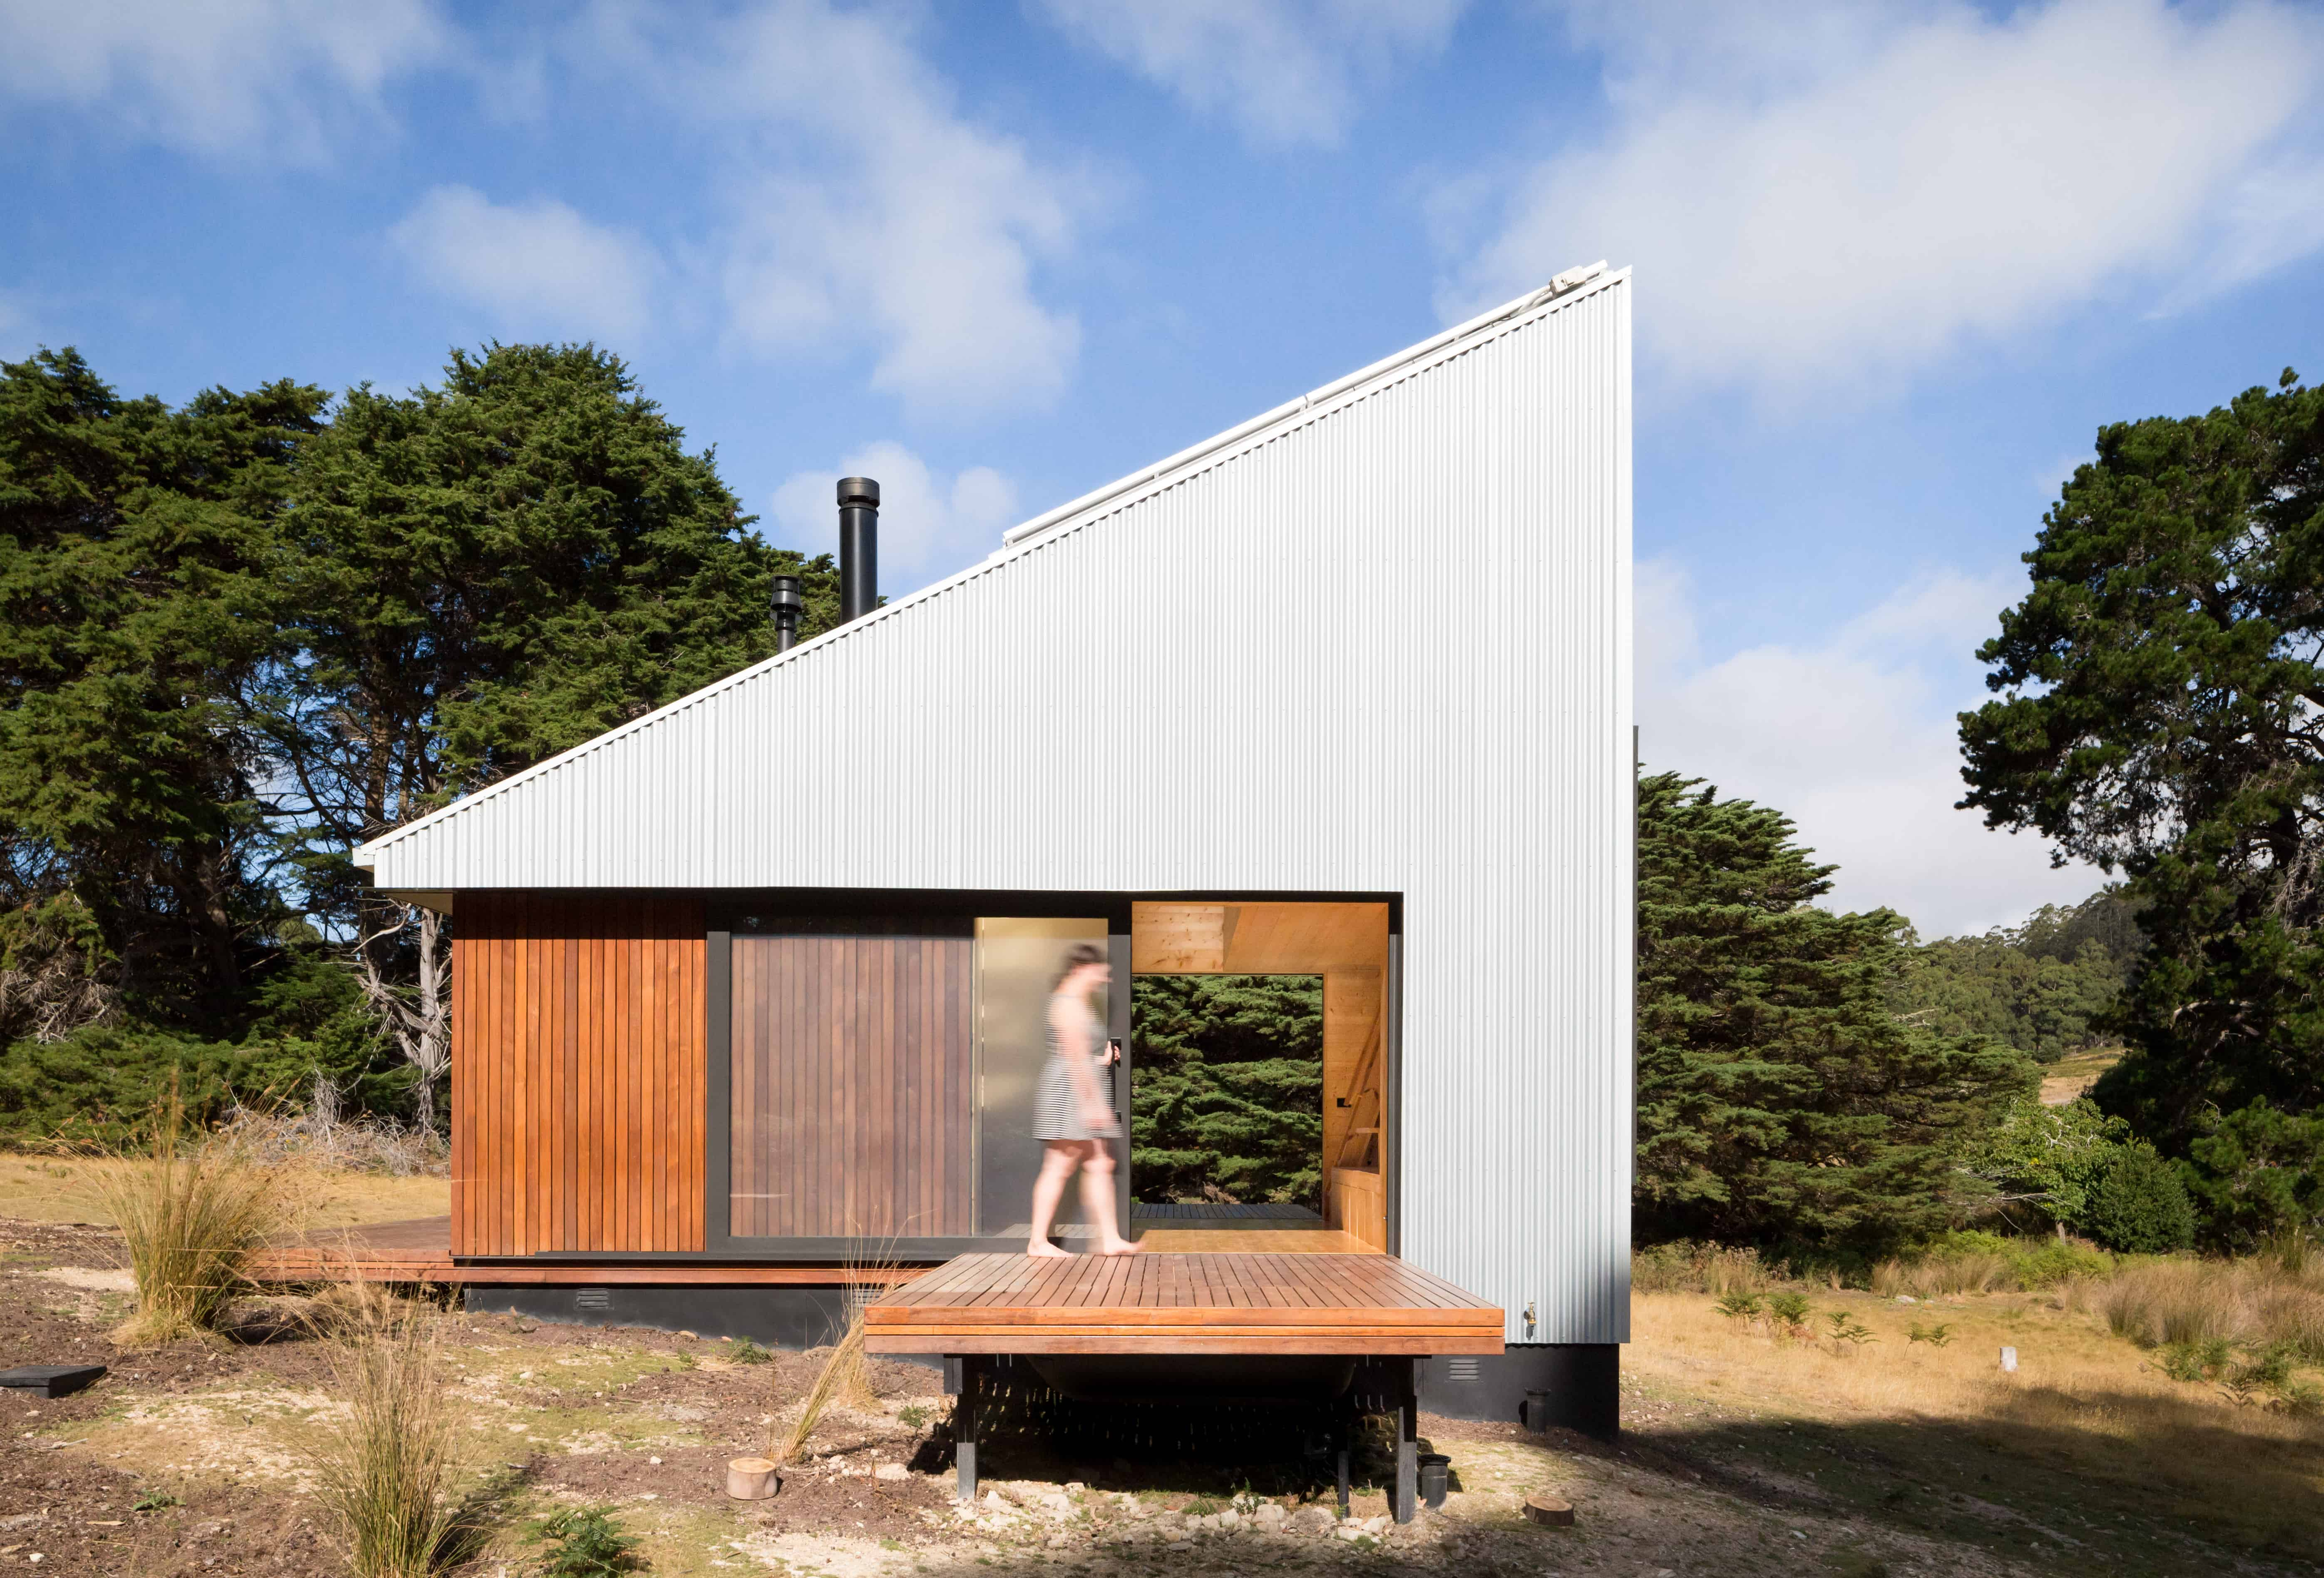 The Township Of Alonnah Is Located On The West Coast Of Bruny Island And Is The Site Of Maguire + Devine Architects' Project, Bruny Island Hide